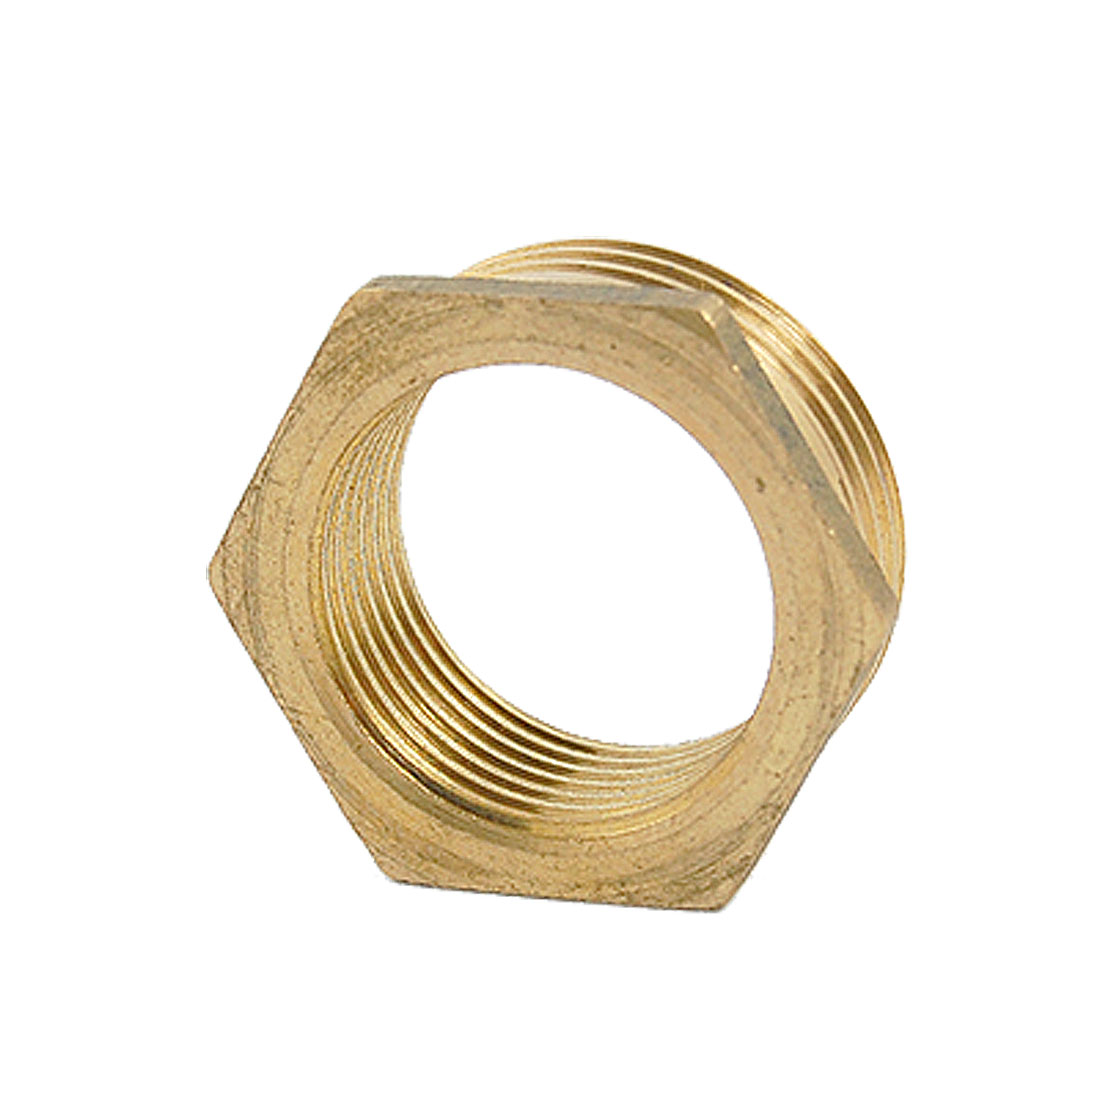 25 x 31.5mm M x F Brass Threaded Reducing Bushing Fitting